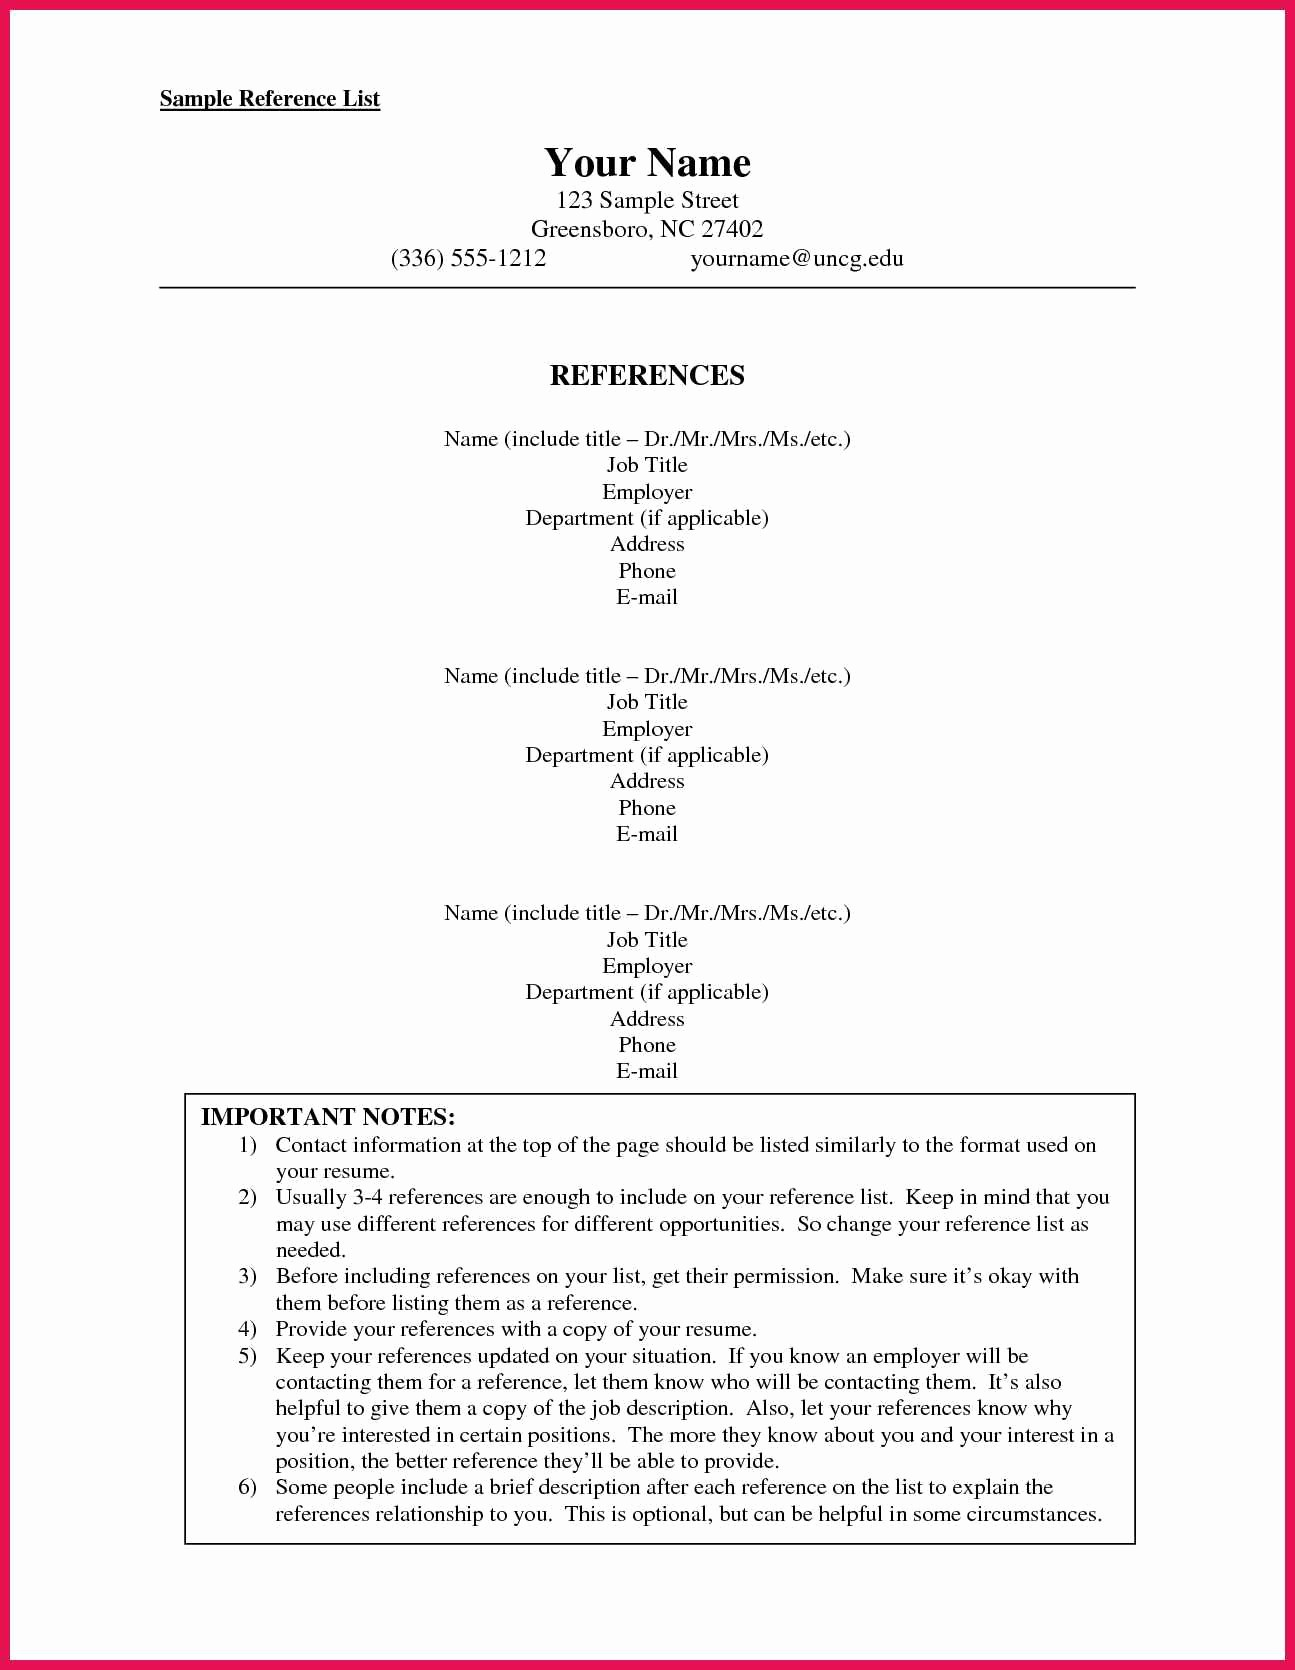 Listing References On A Resume Lovely How to format A Reference List